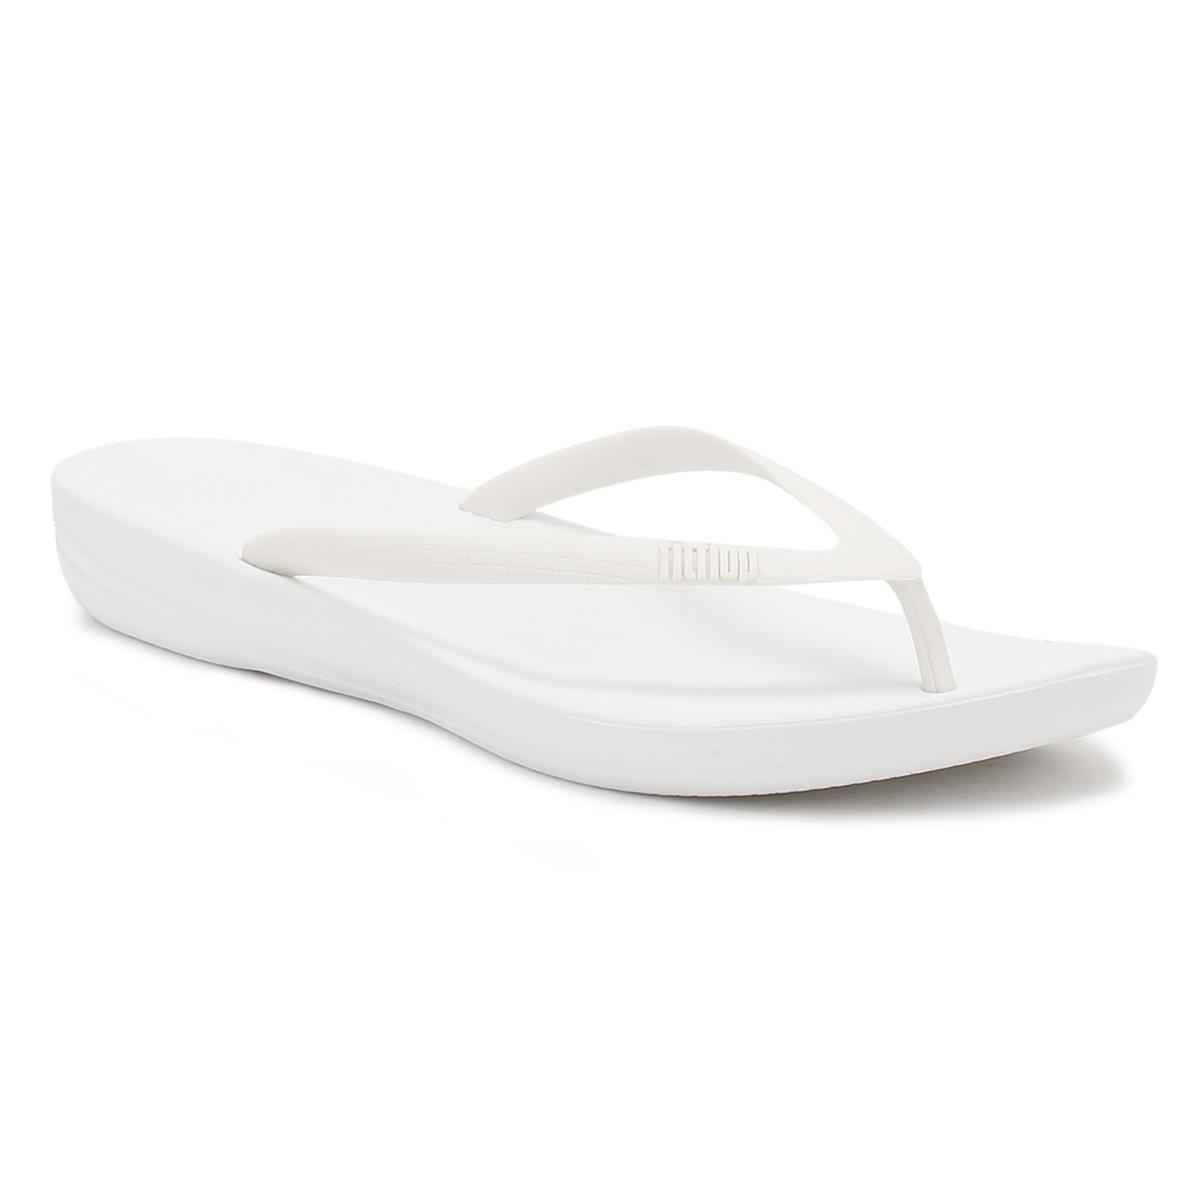 e4343096ccb Lyst - Fitflop Iqushion Ergonmic Flip Flops in White - Save 41%